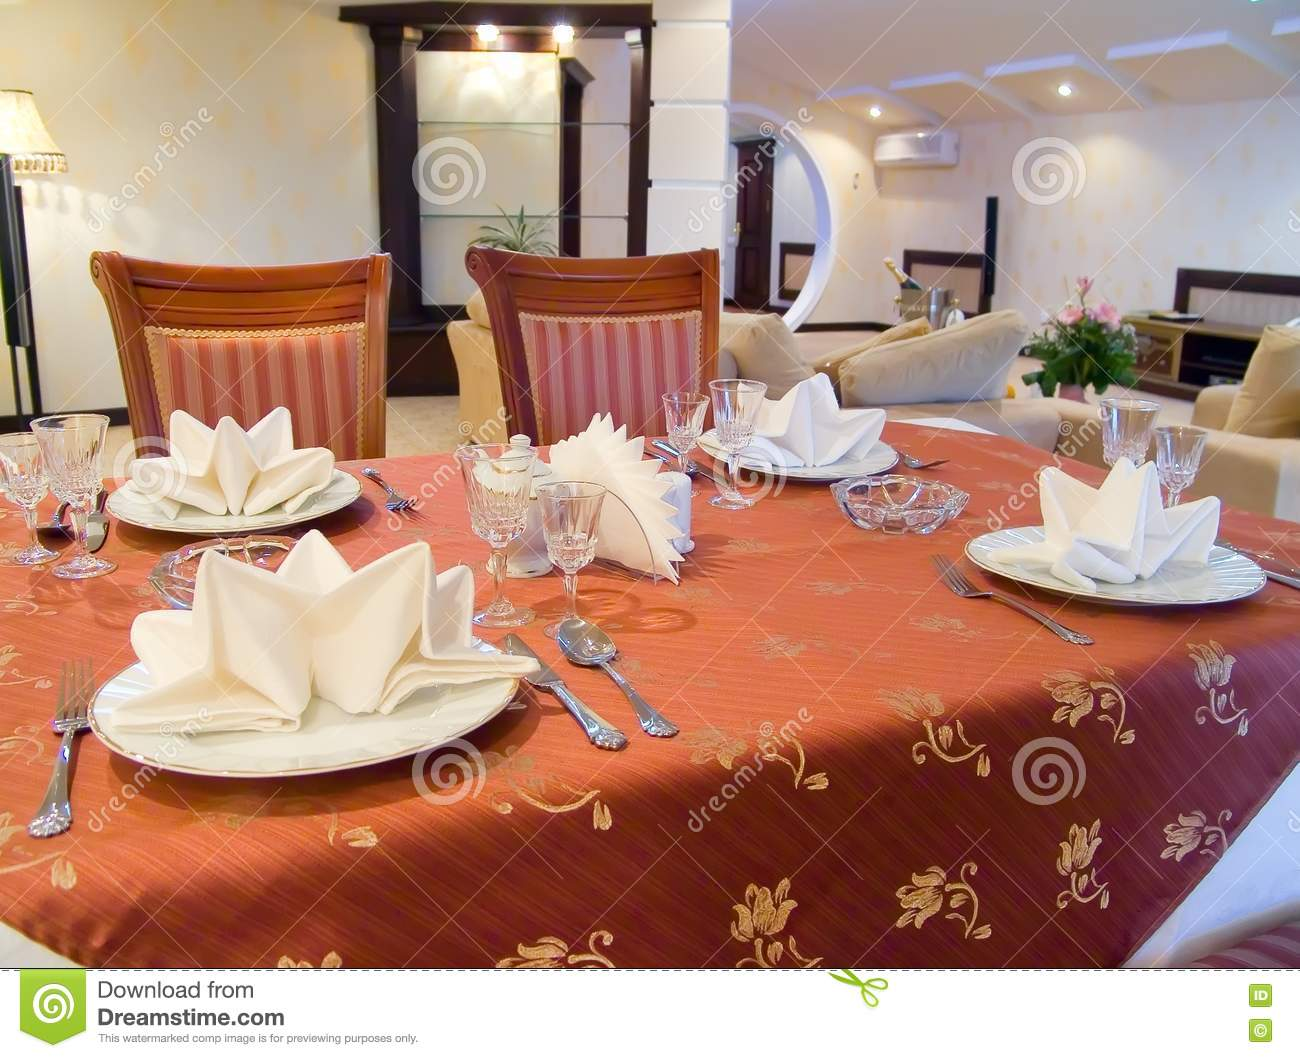 Dining table in hotel stock photo image 17301160 - Hotel dining tables ...